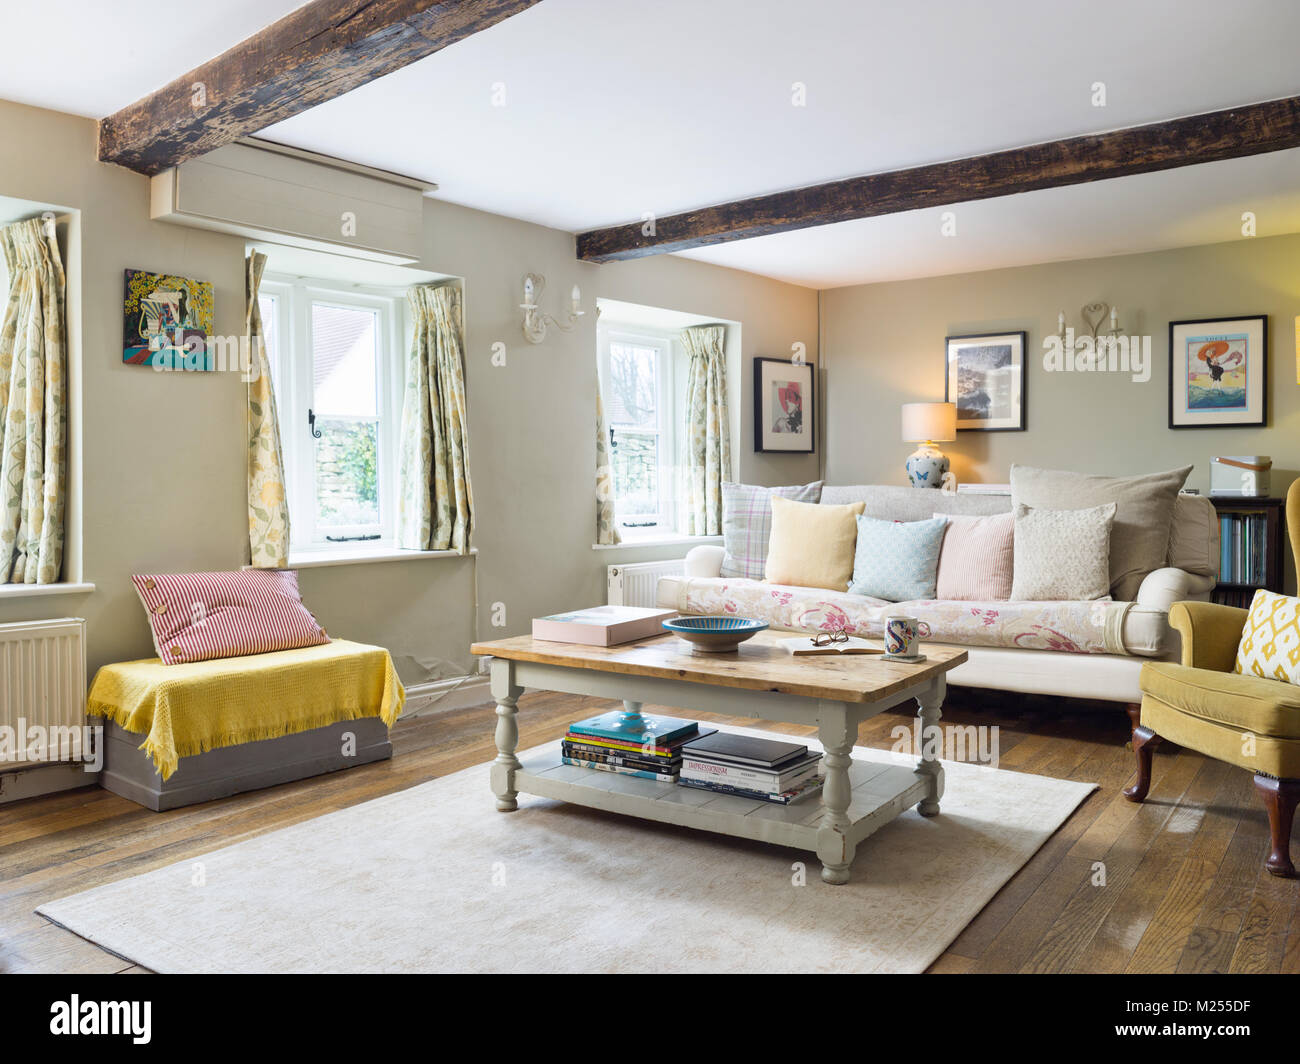 An interior view of a comfortable sitting room in a traditional English cottage home. - Stock Image